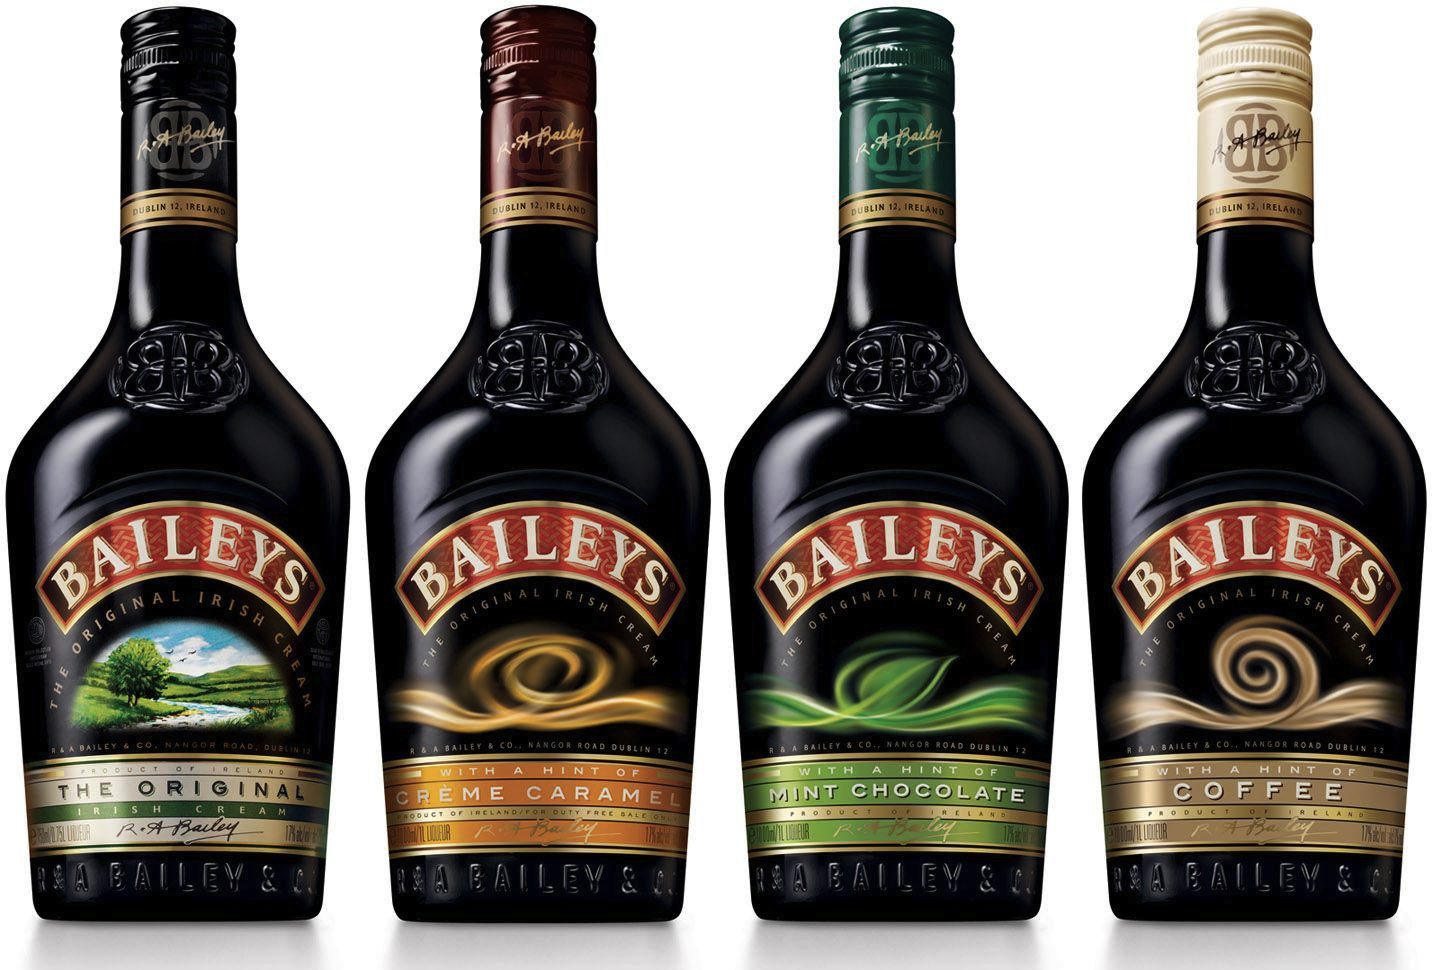 Baileys bottle gets a slimmer feminine look thanks to the for The bailey